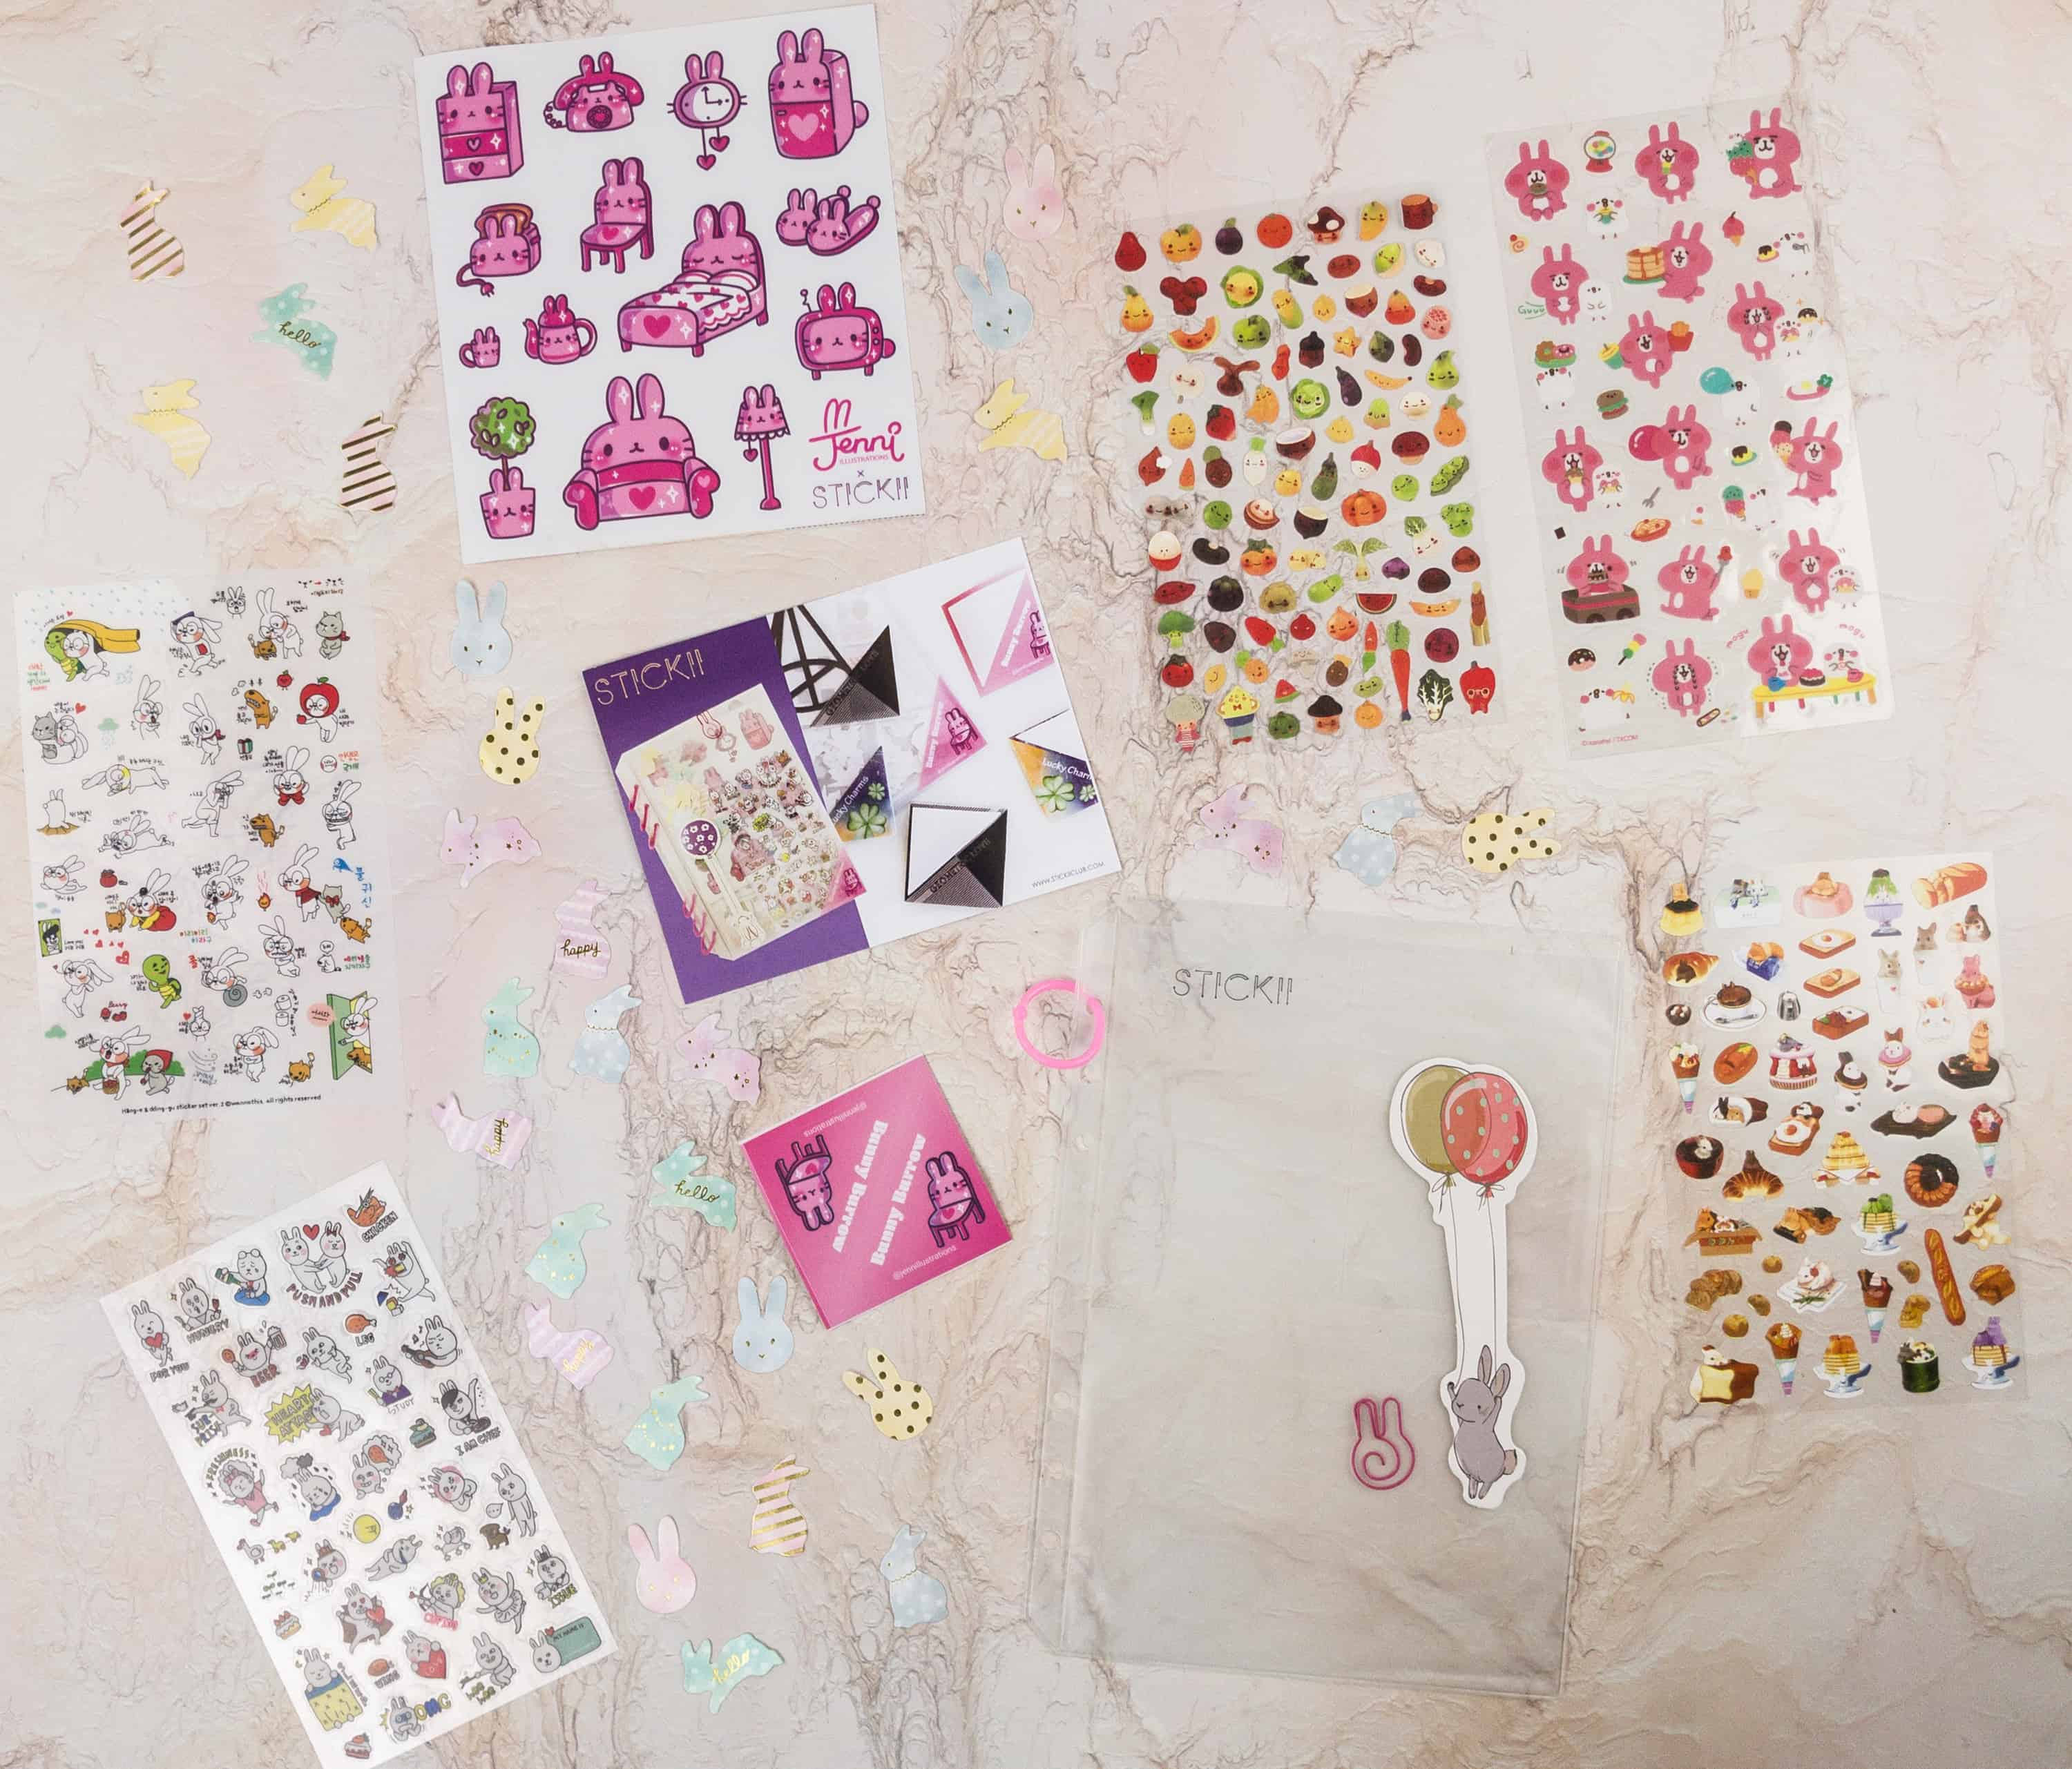 Stickii Club January 2018 Subscription Box Review – Cute Pack!